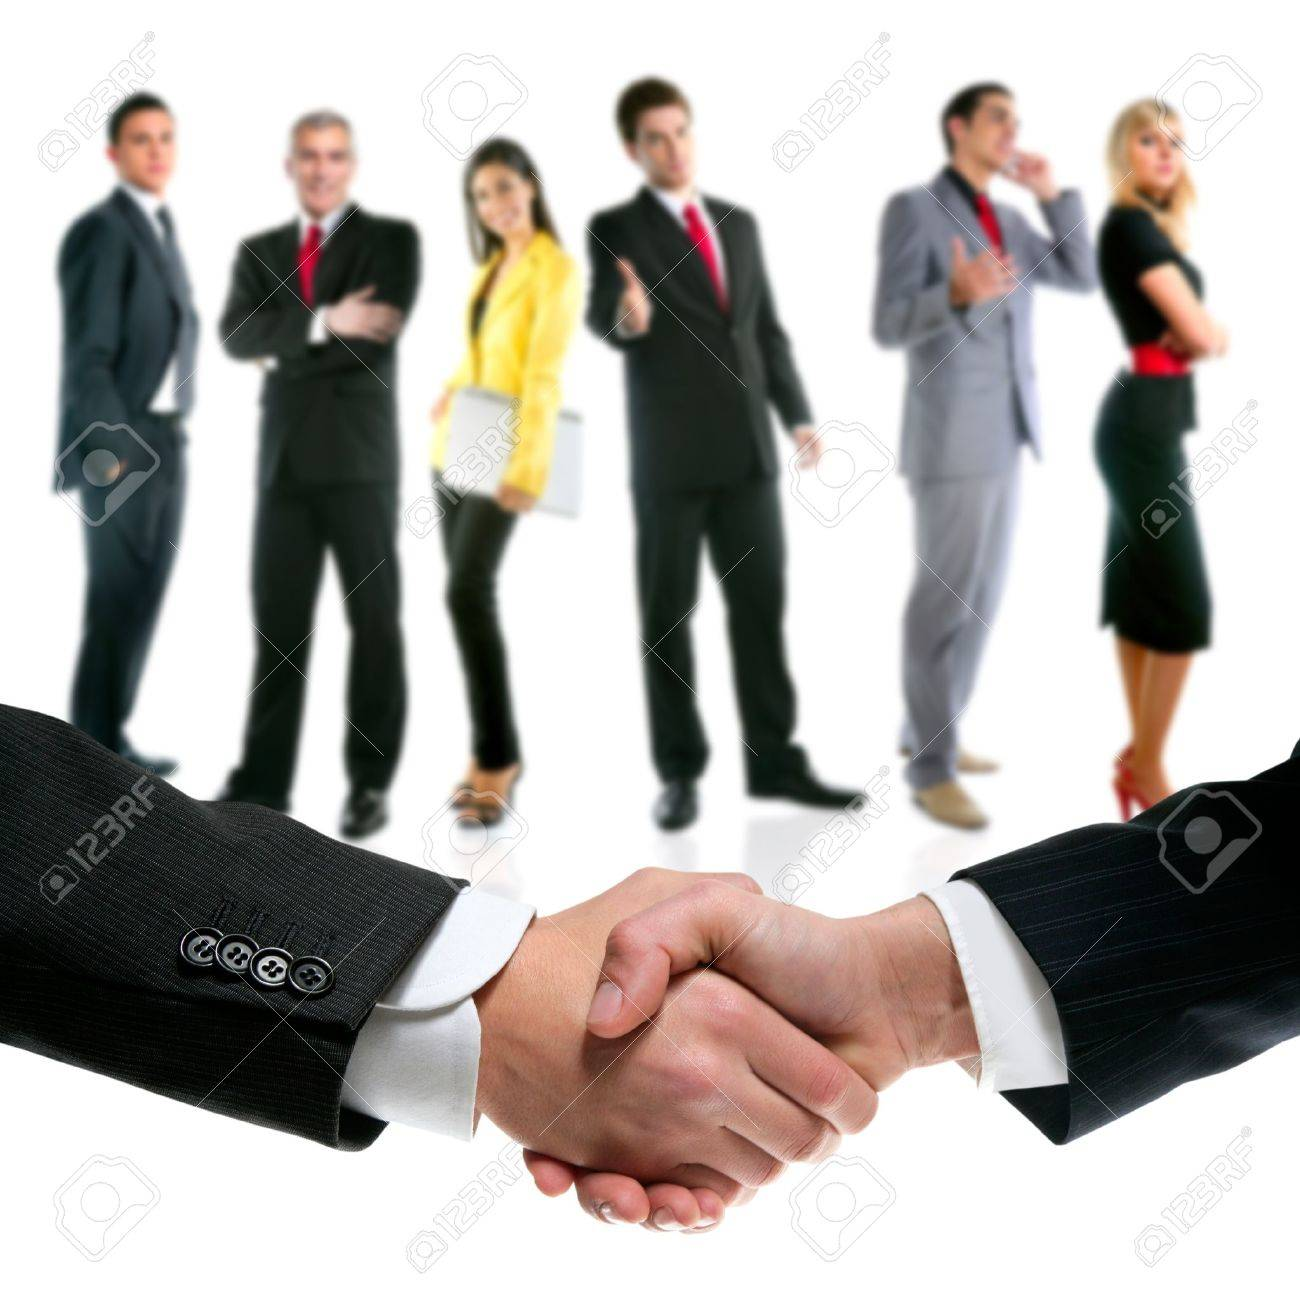 business people handshake with company team in background Stock Photo - 10772027